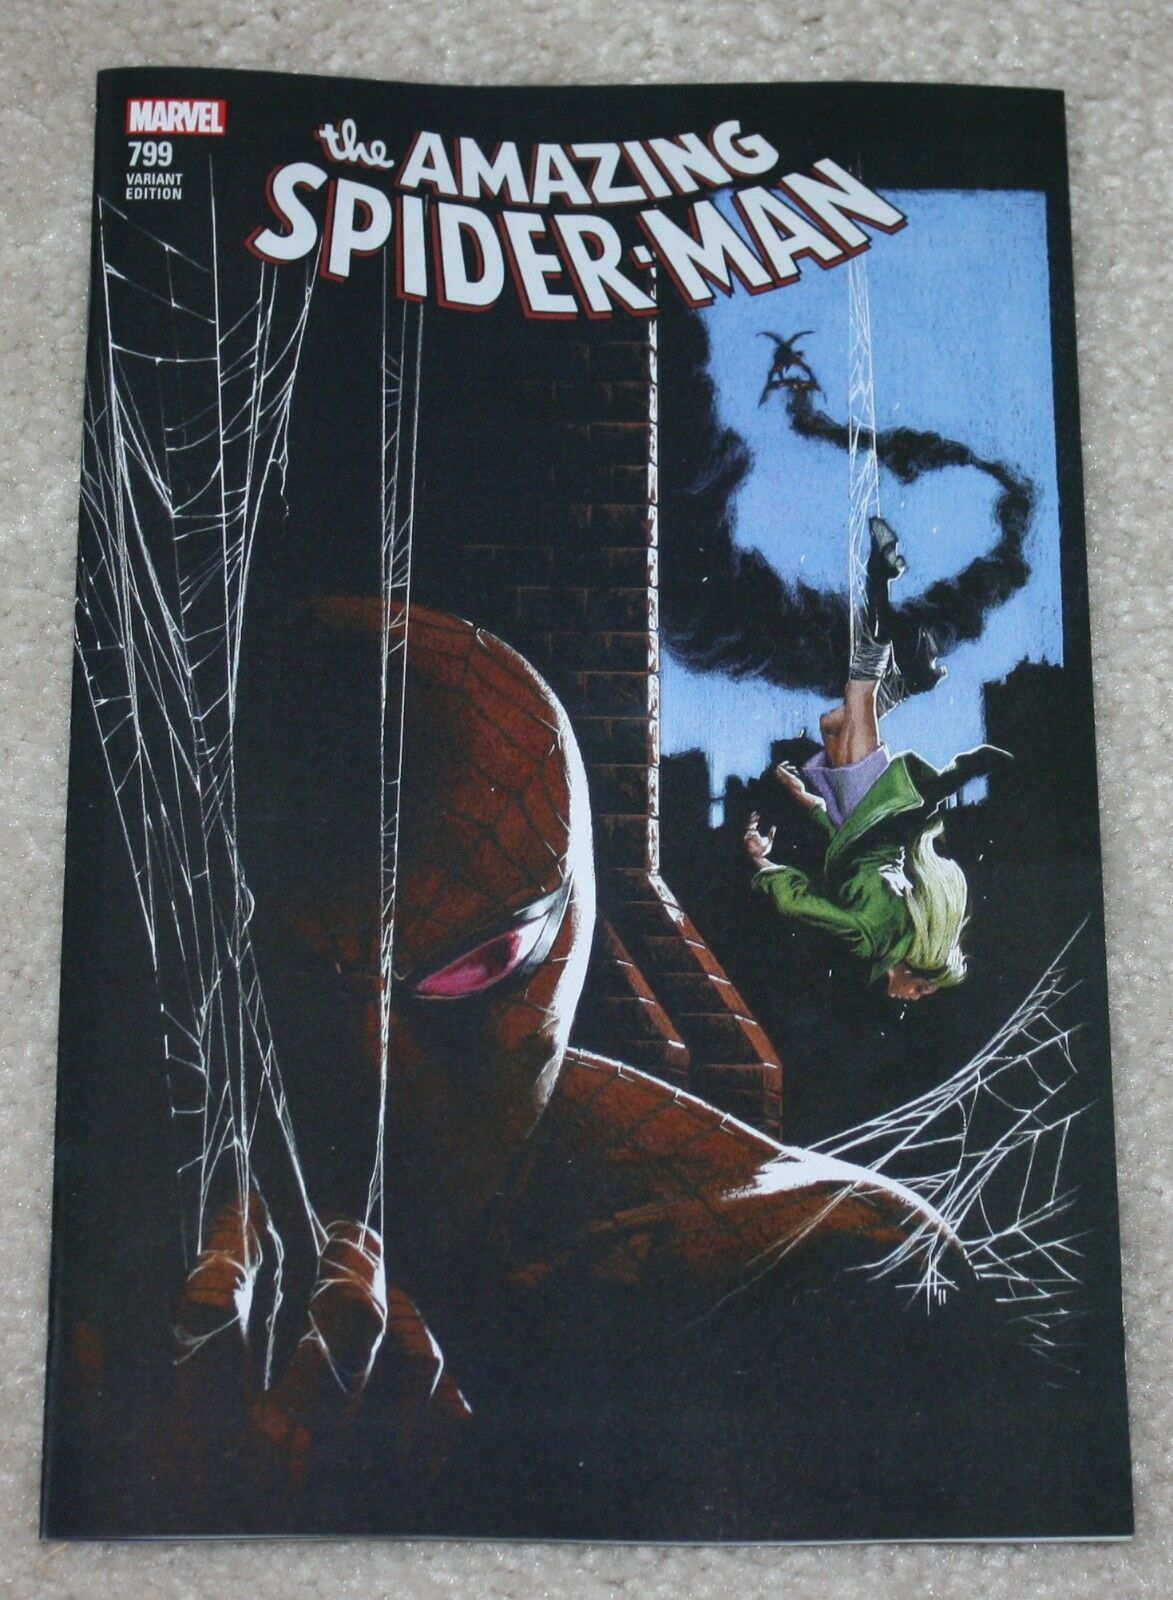 AMAZING SPIDER-MAN #799 GABRIELLE DELL OTTO LOGO EXCLUSIVE VARIANT RED GOBLIN